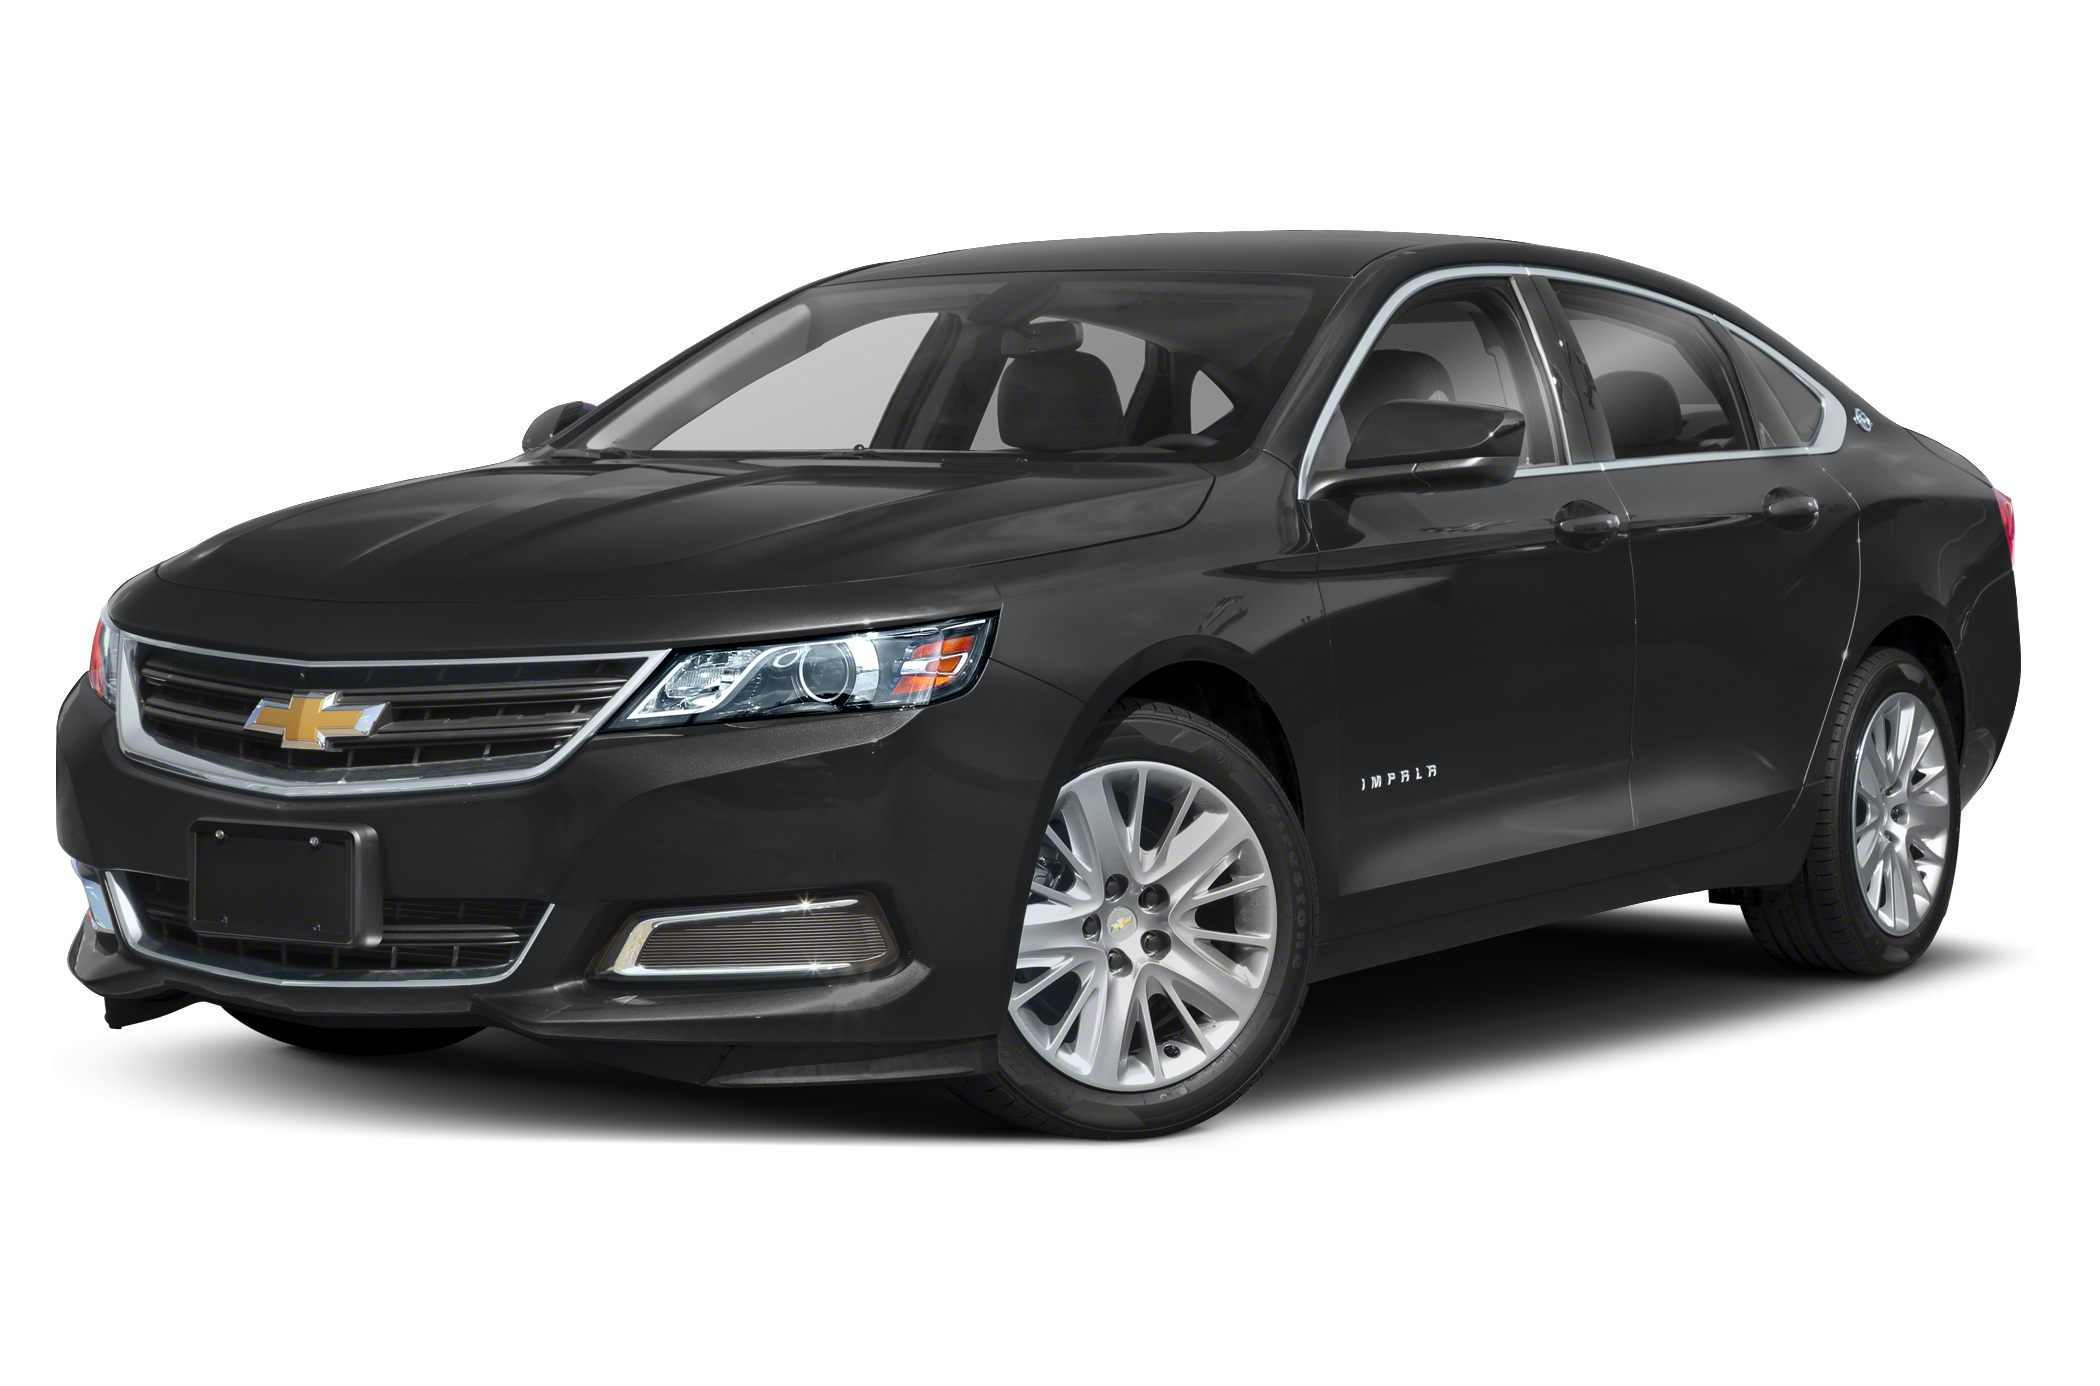 2020 Chevrolet Impala Specs And Prices 2021 Chevrolet Impala Premier Fwd Review, Lease, Msrp